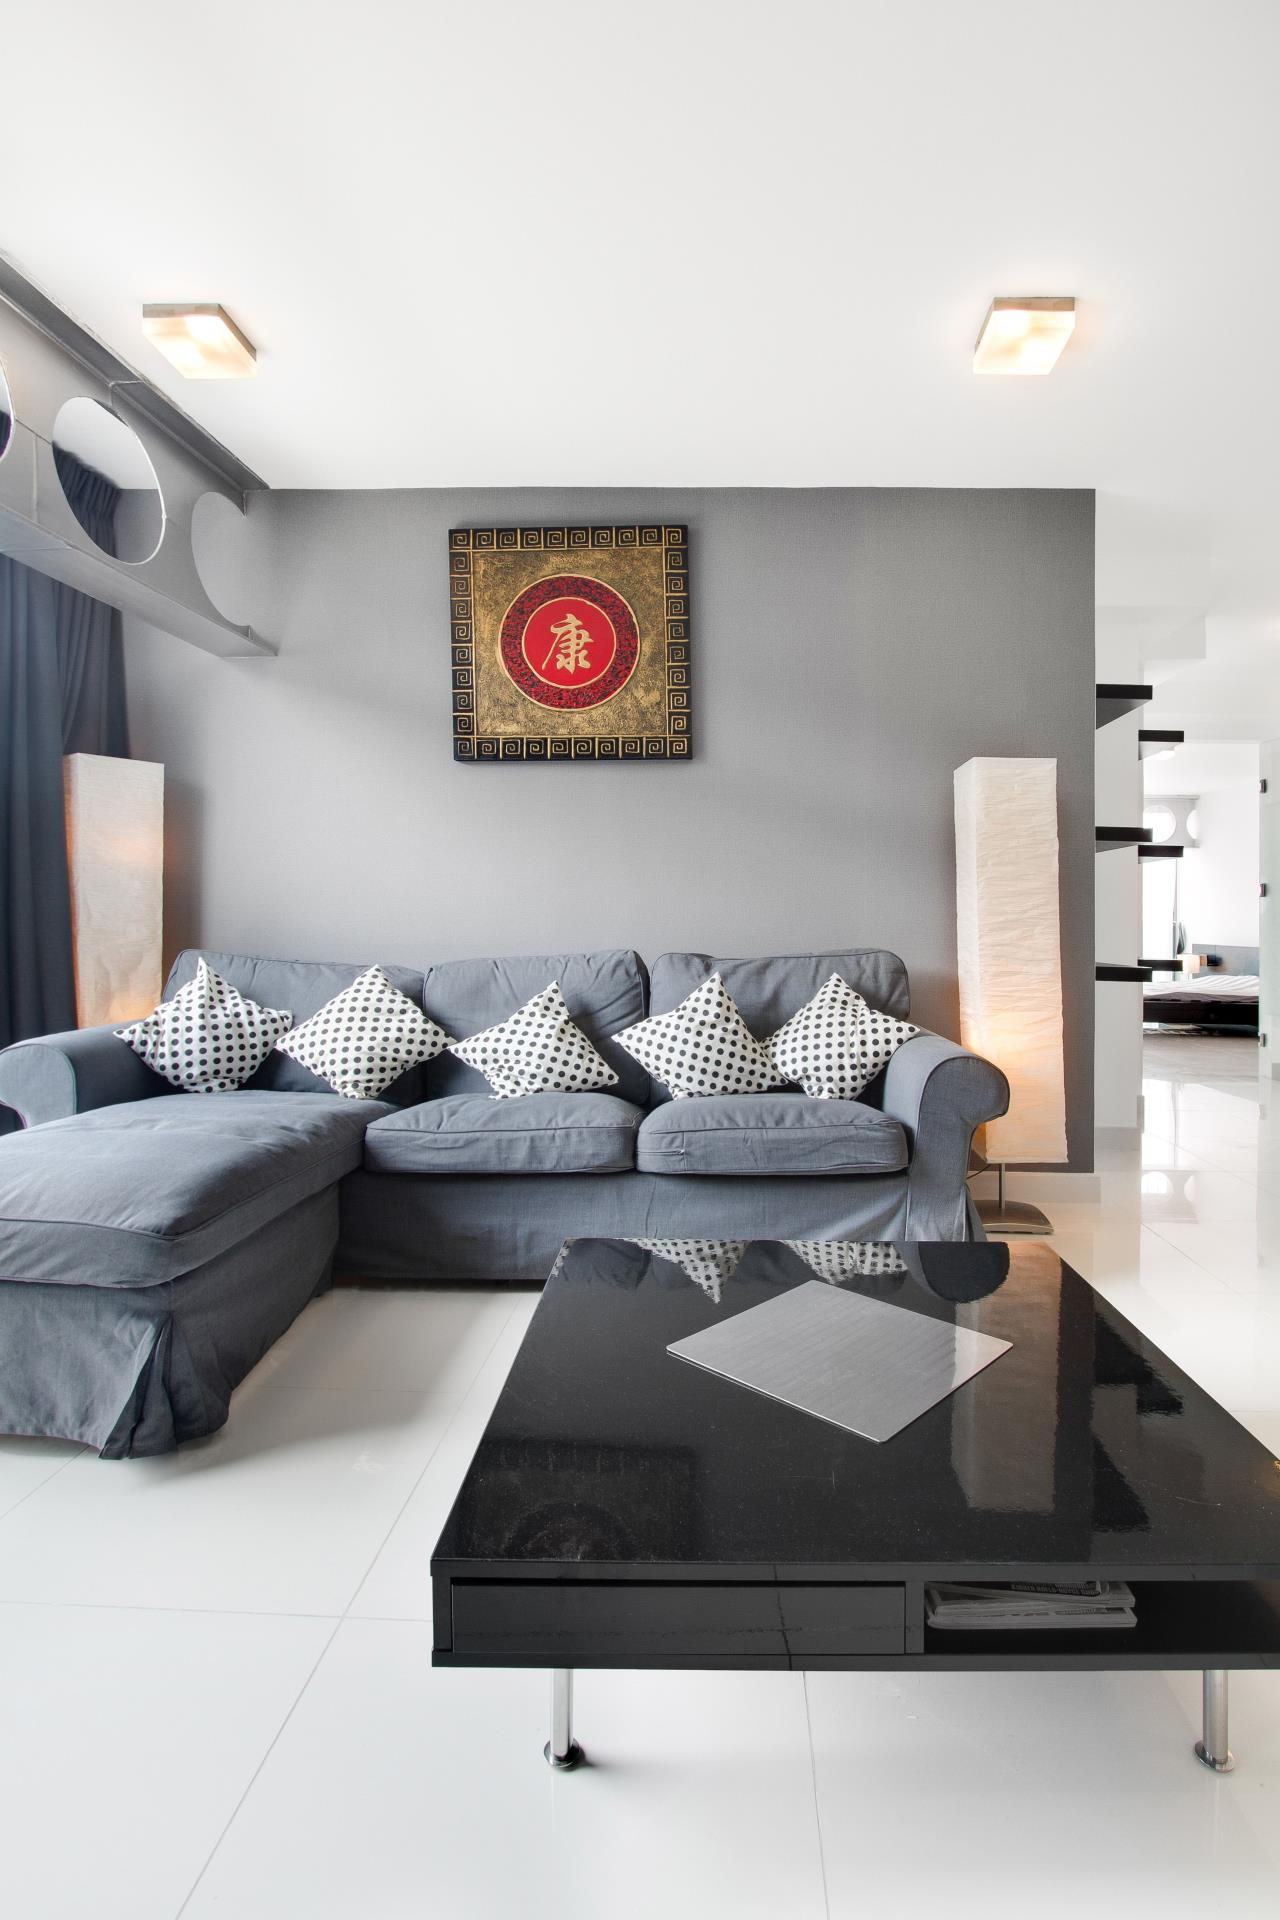 Thaiproperty1 Agency's Condo Only 10 Minutes from Pattaya Walking Street, Seller Finance! 5